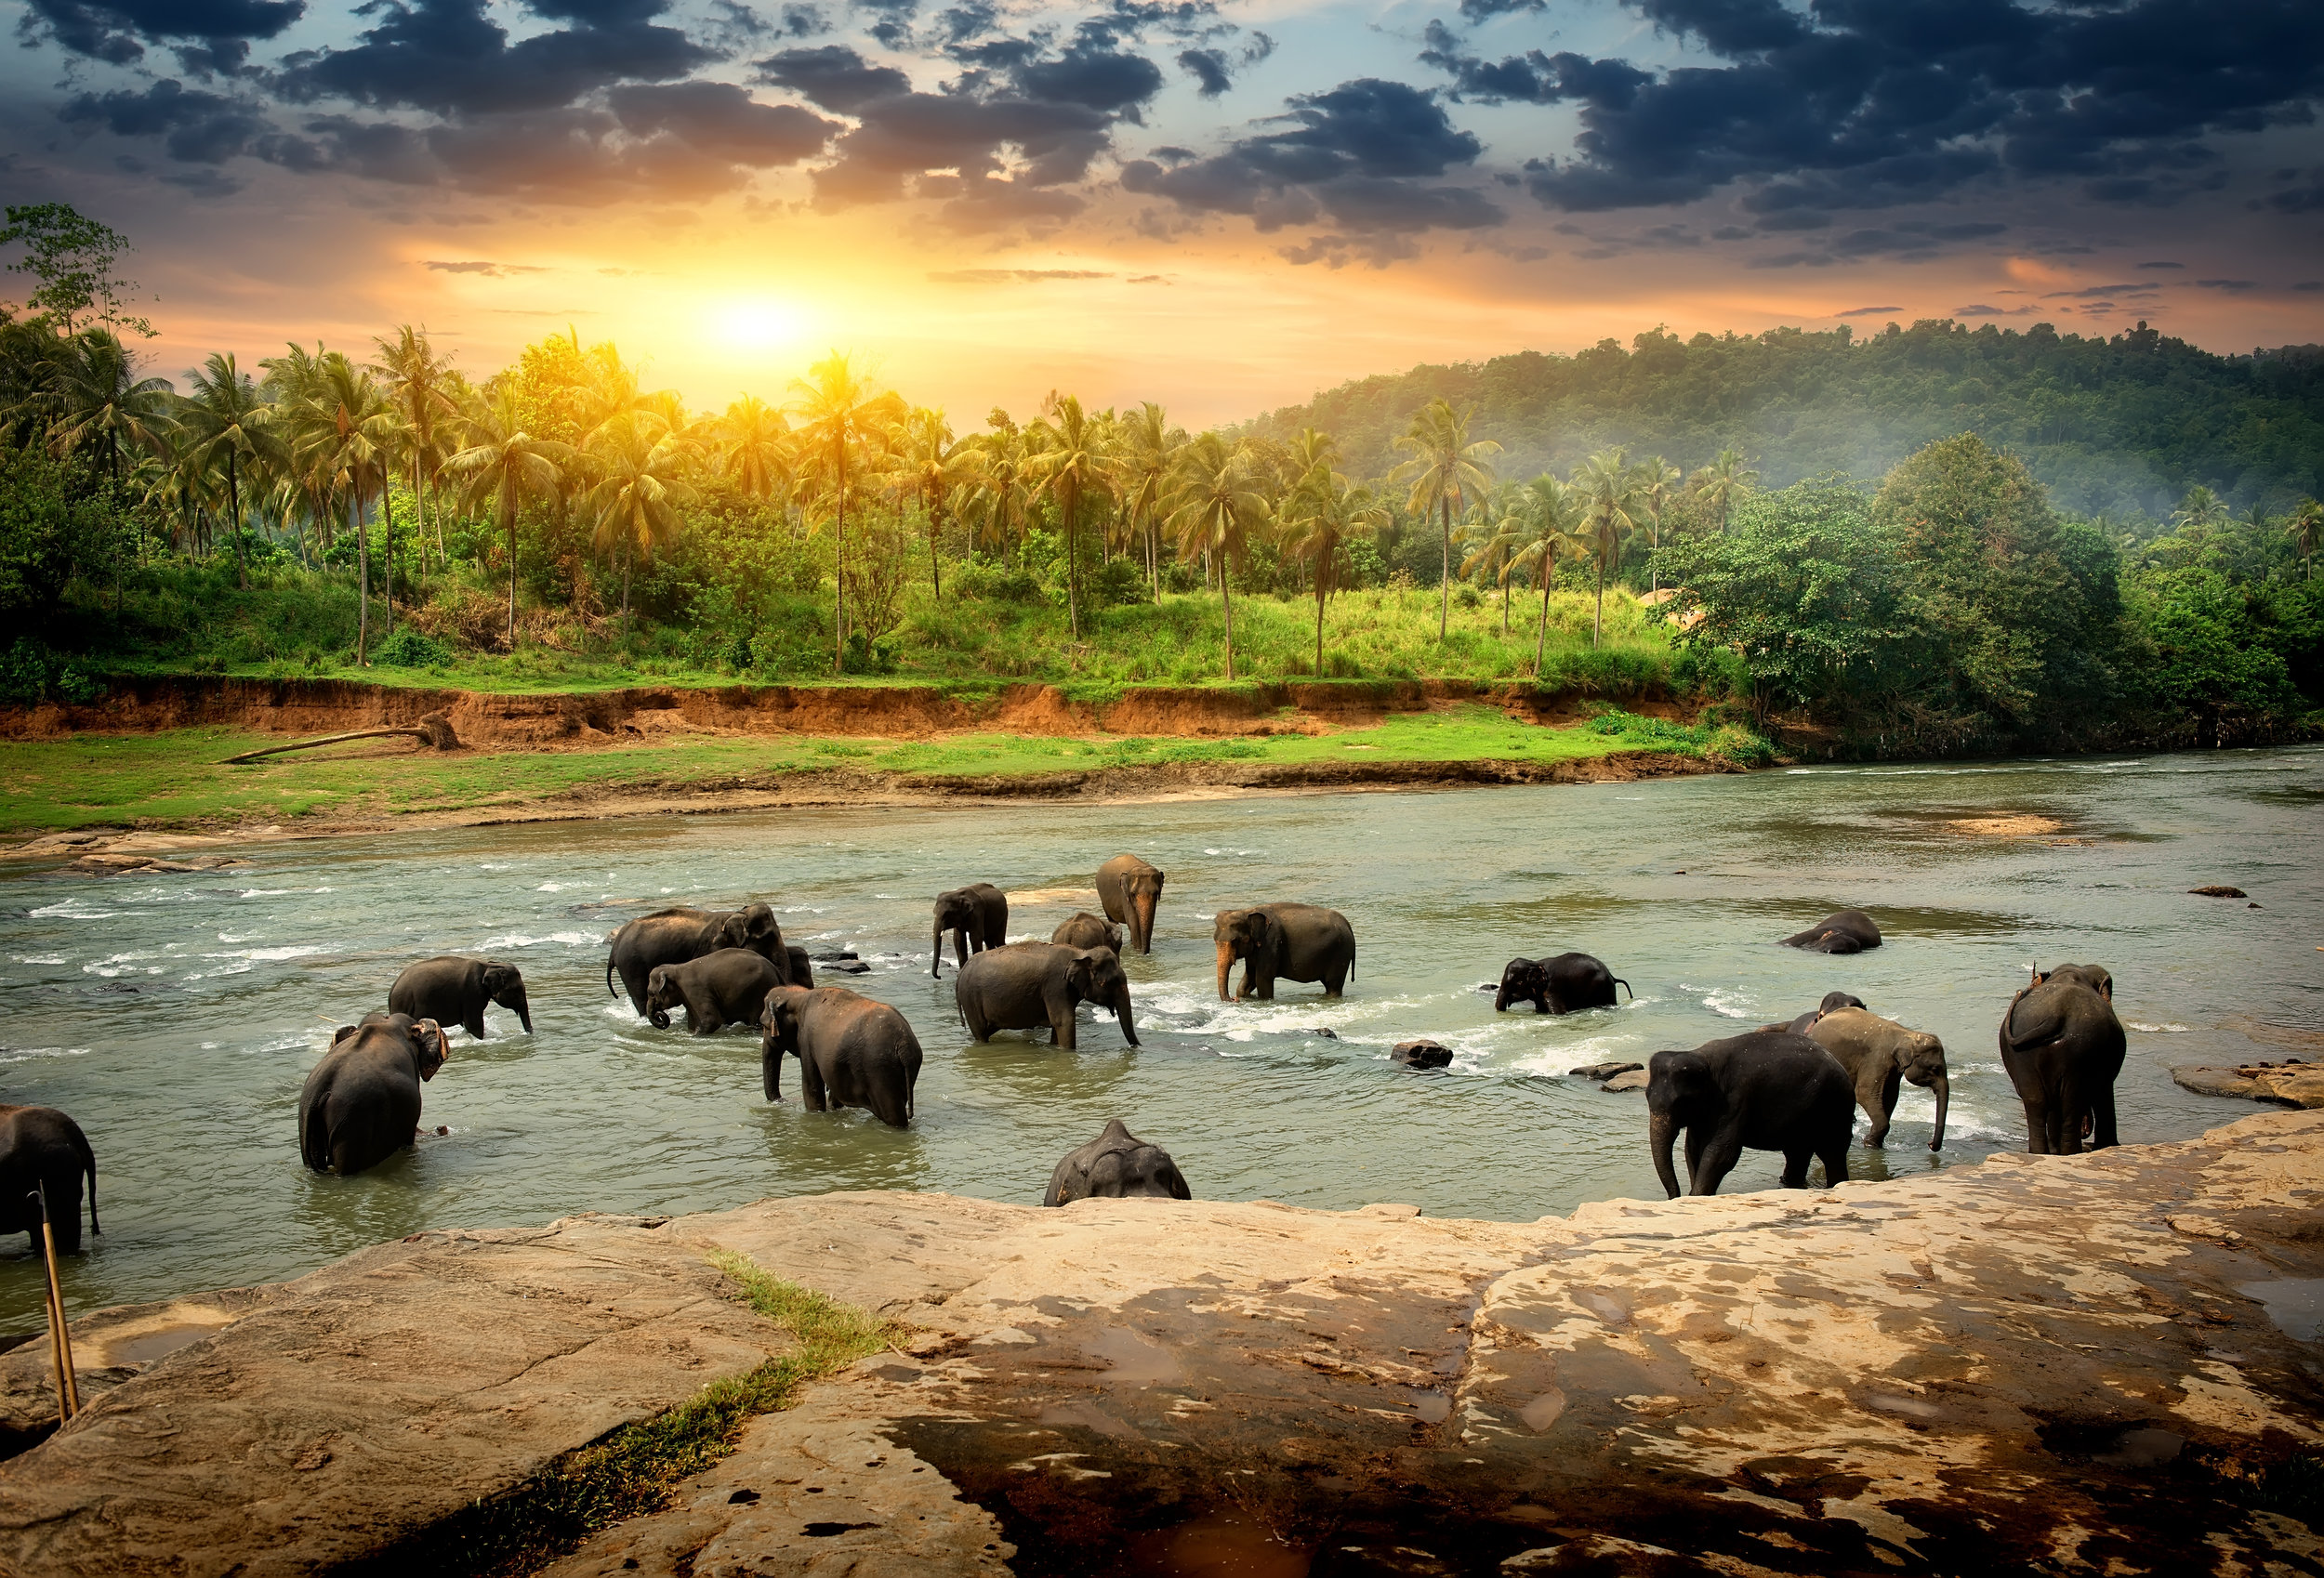 PICTURED:  Herd of elephants bathing in the jungle river of Sri Lanka